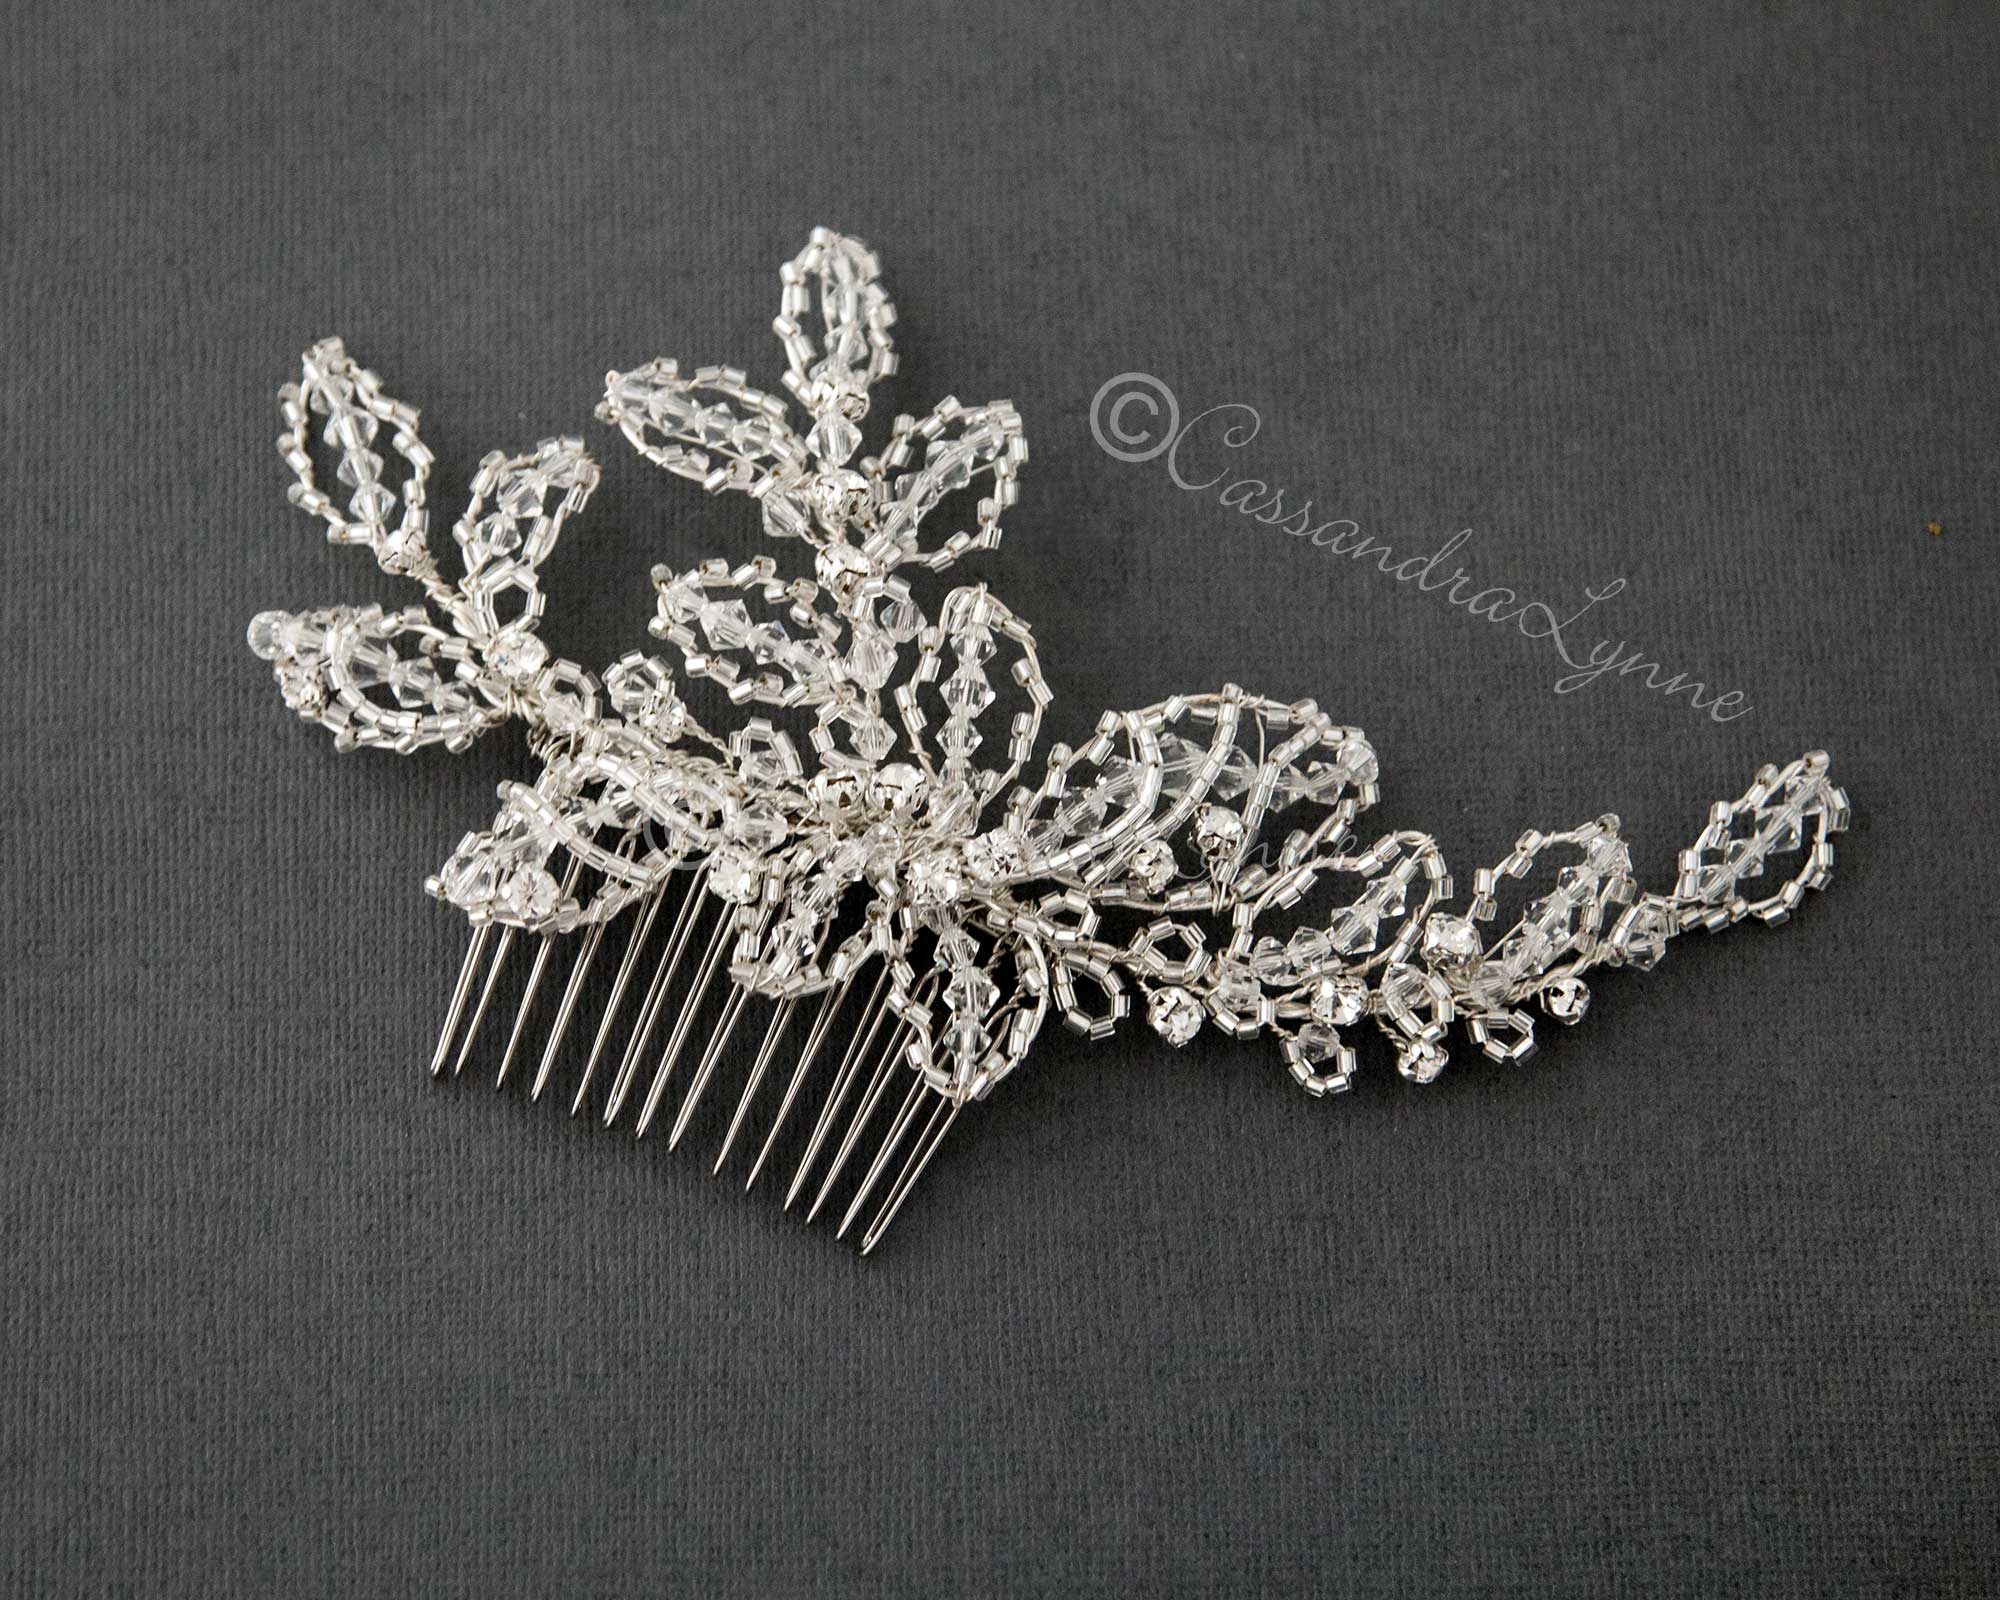 Wedding Hair Comb of Silver Beads and Crystals